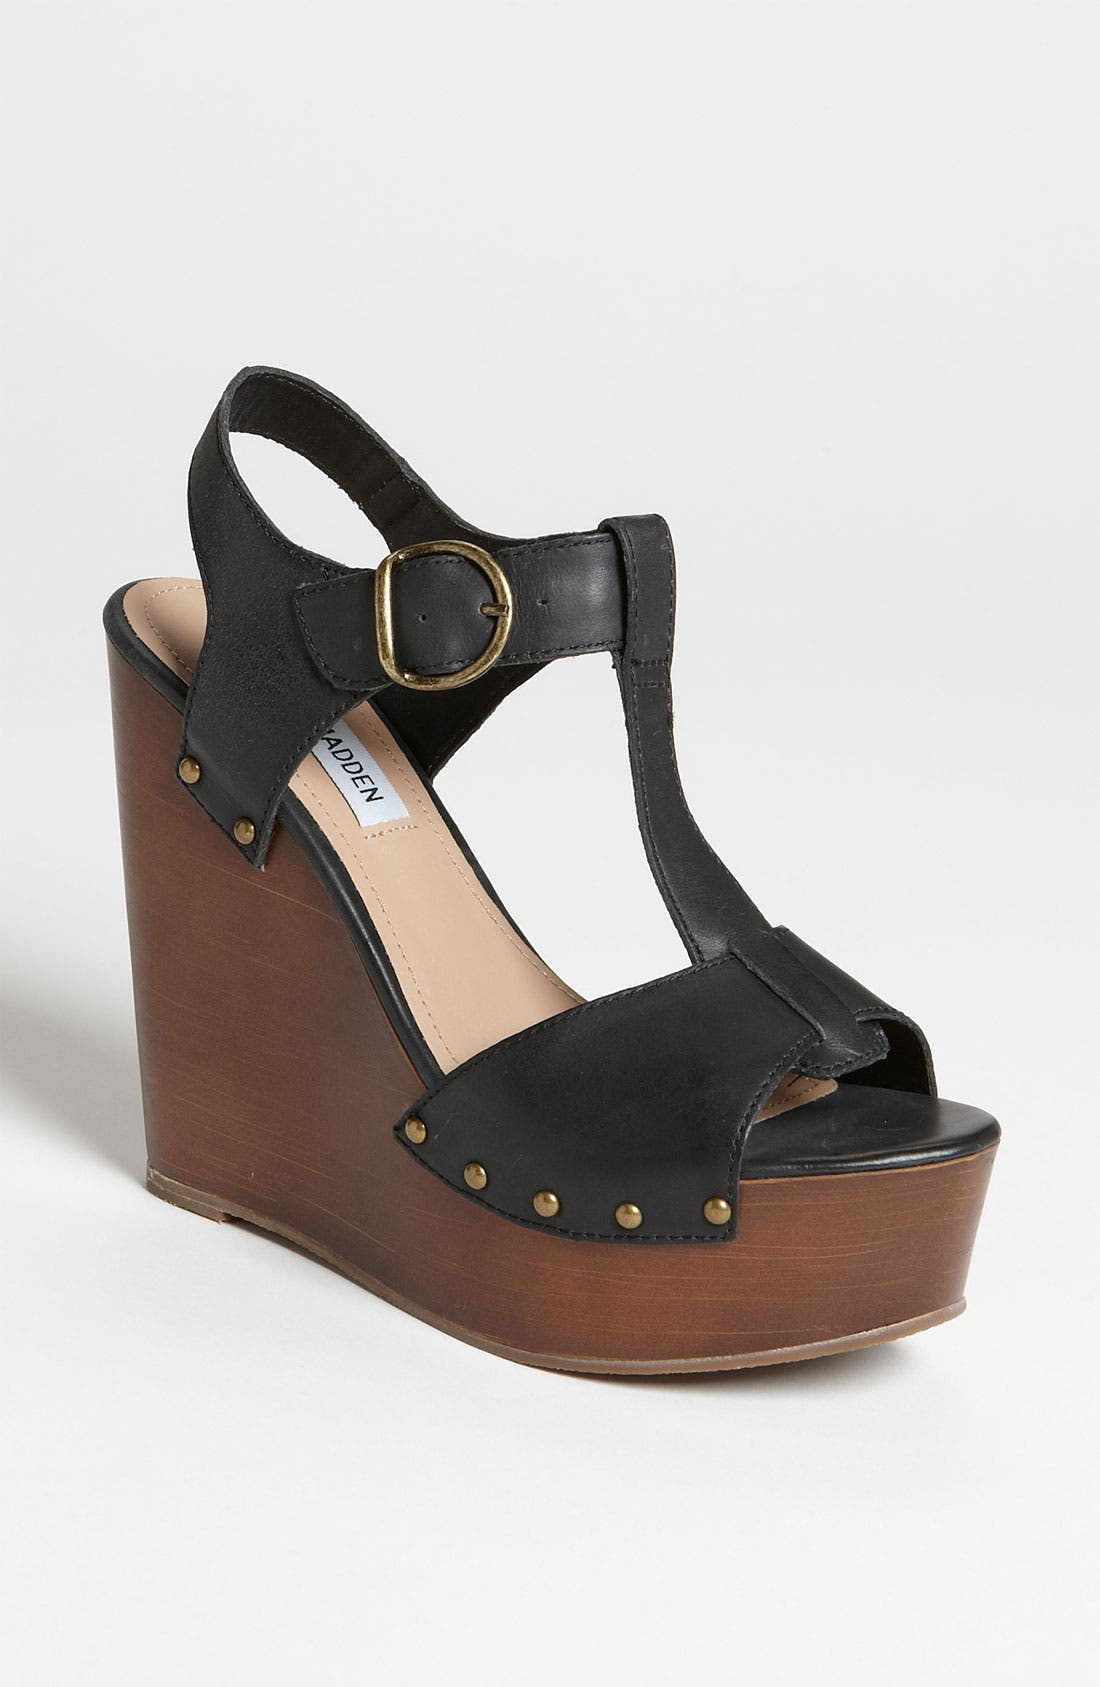 Alternate Image 1 Selected - Steve Madden 'Wyliee' Sandal